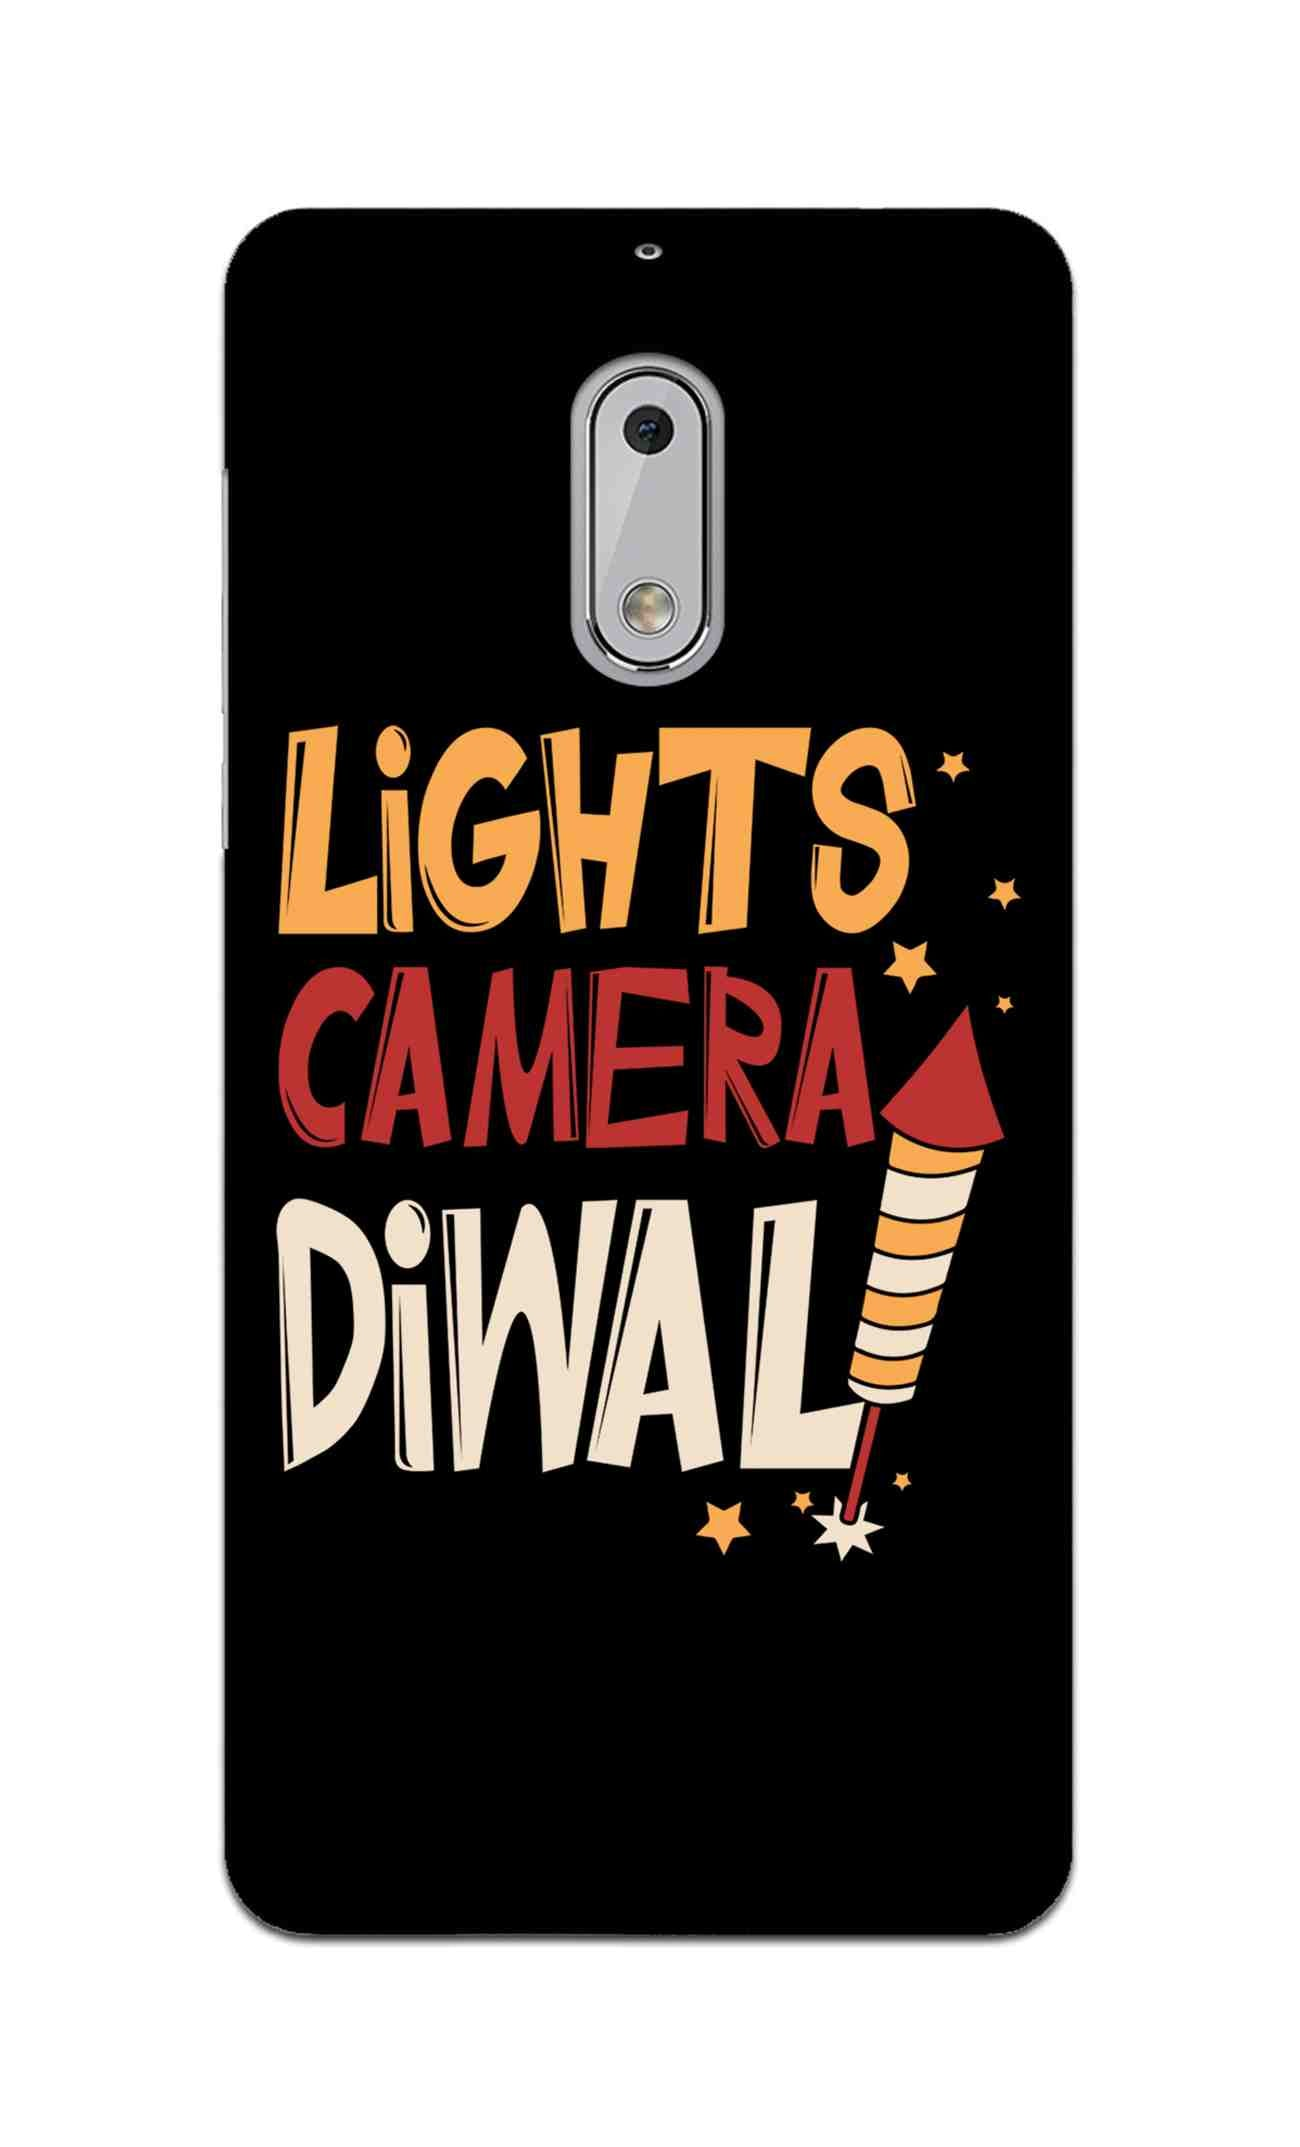 Lights Camera Diwali Enjoy Festival Of Light Nokia 6 Mobile Cover Case